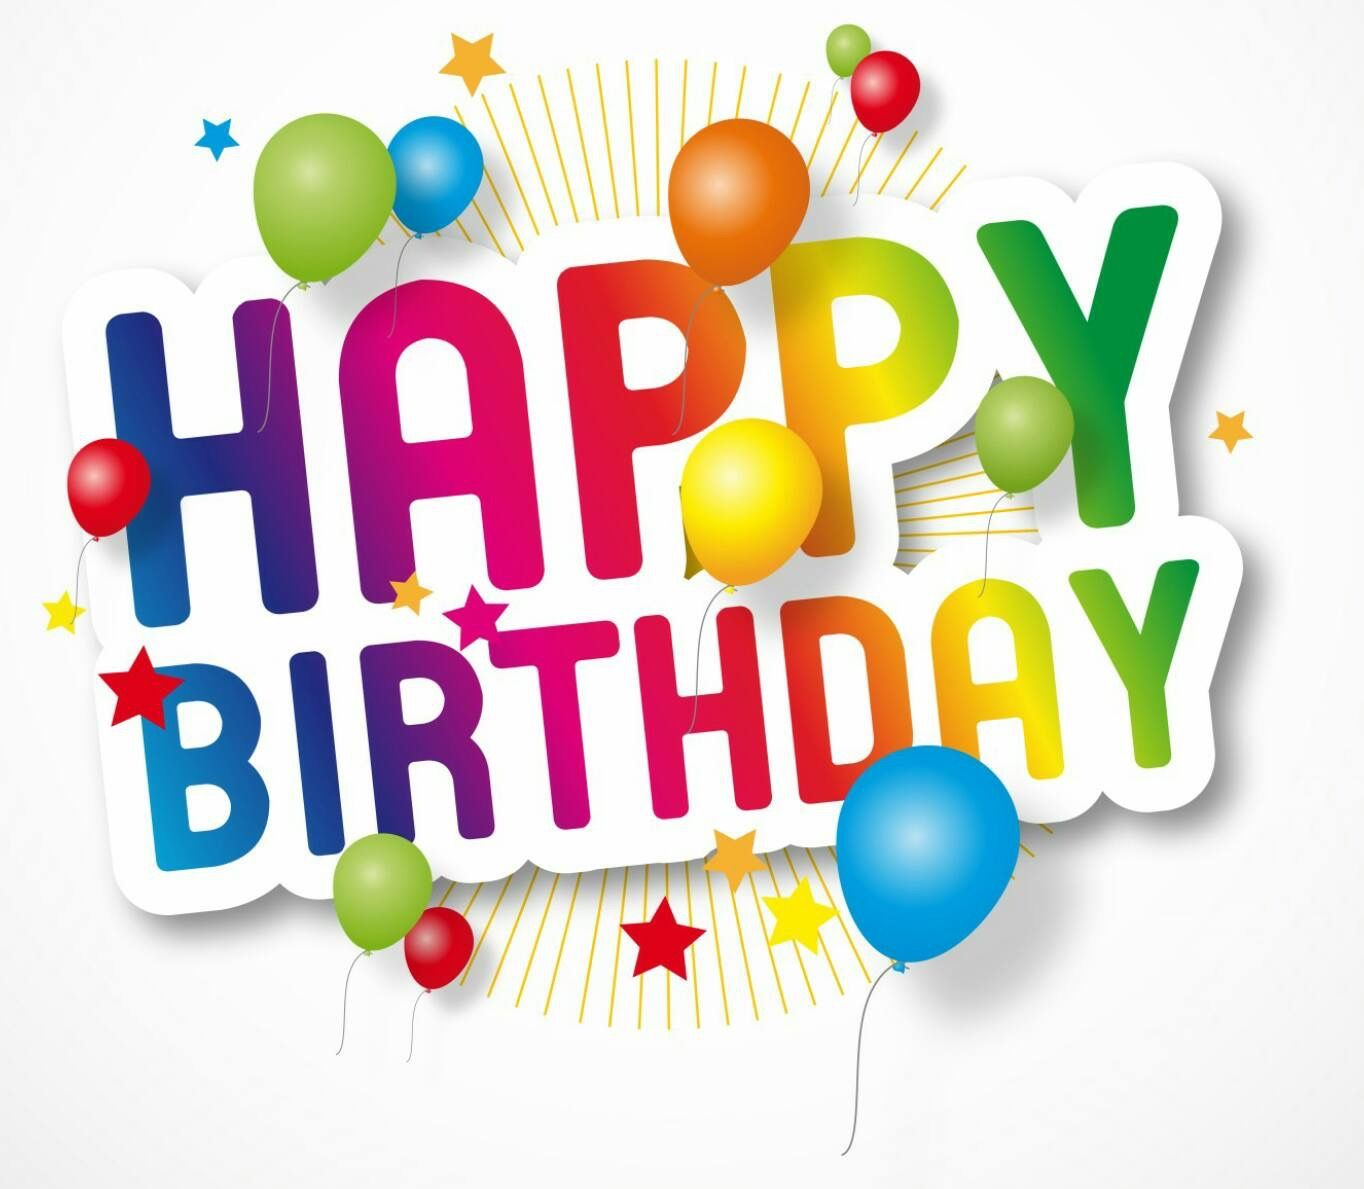 Pin by terry stilesmckee on birthday banners pinterest